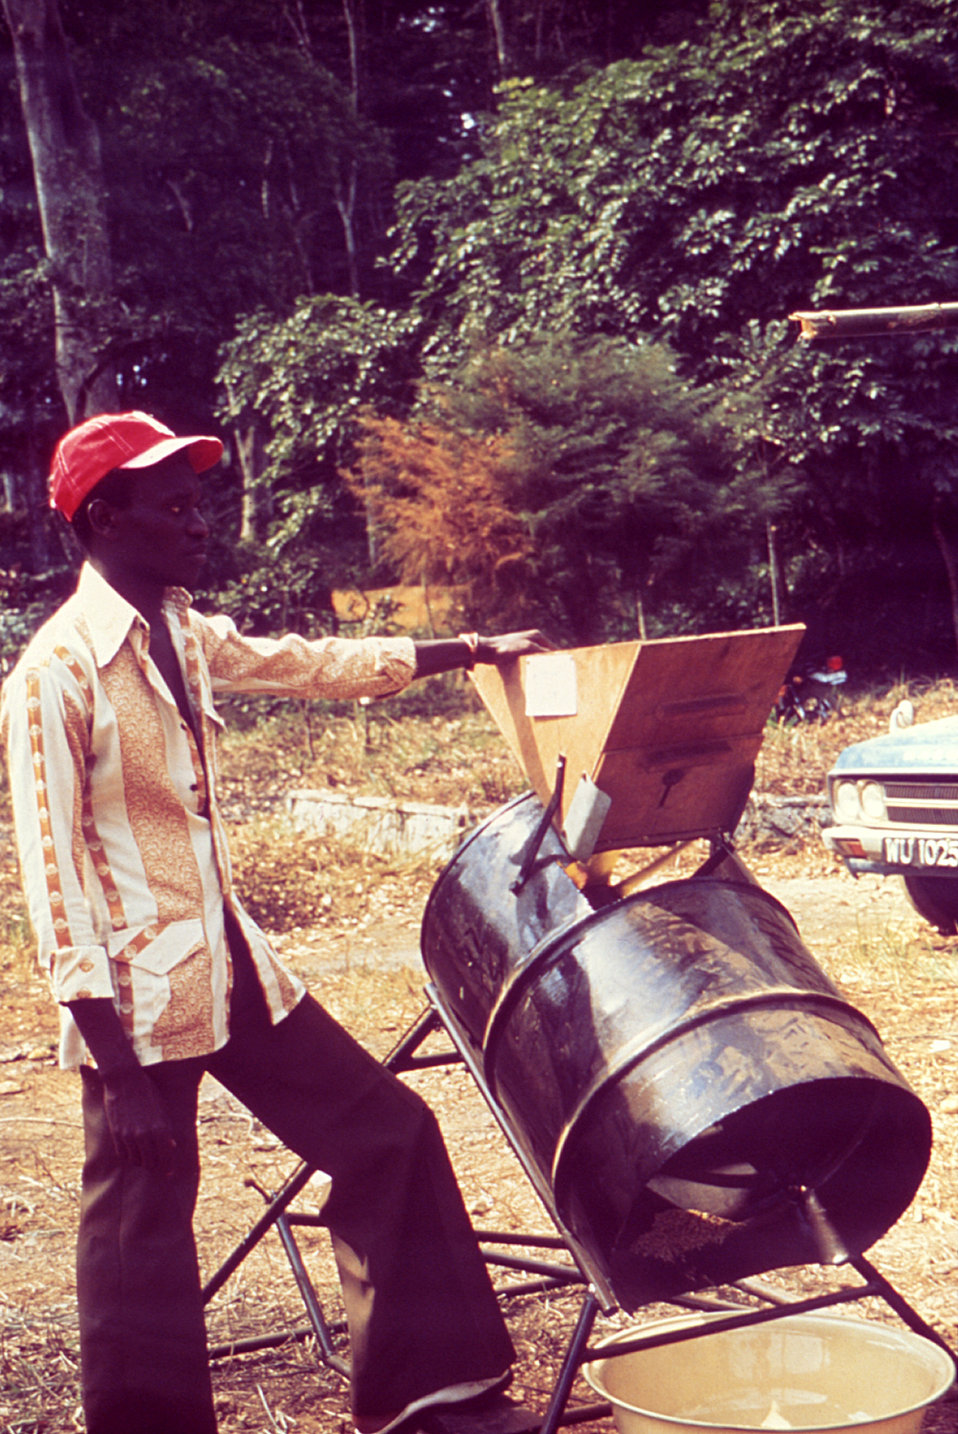 This image depicts a rice processing machine at the site of a 1976 Sierra Leone Lassa fever field study.